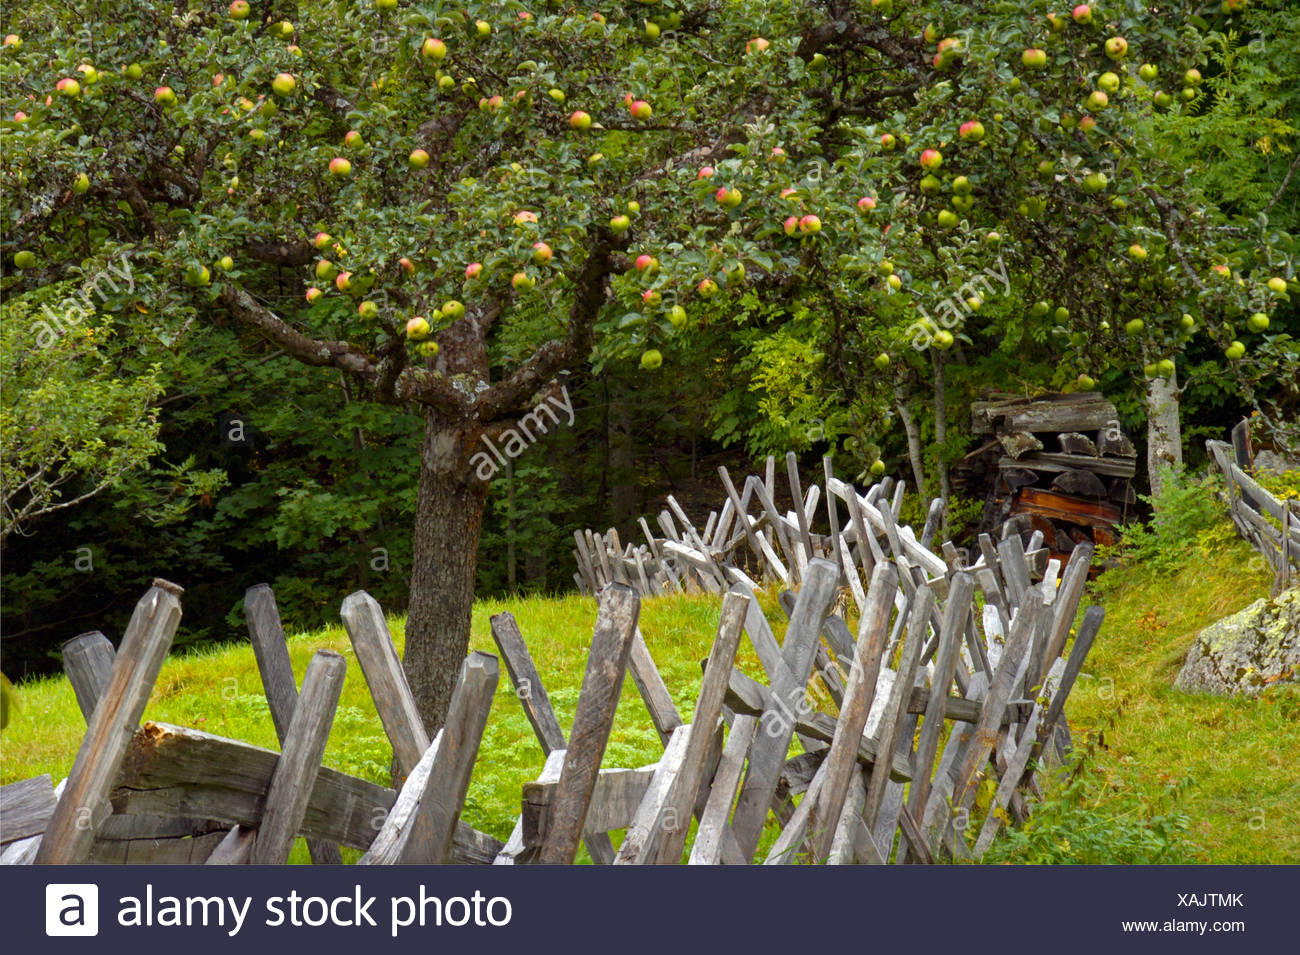 Malus s stock photos malus s stock images alamy for Domestica in svizzera